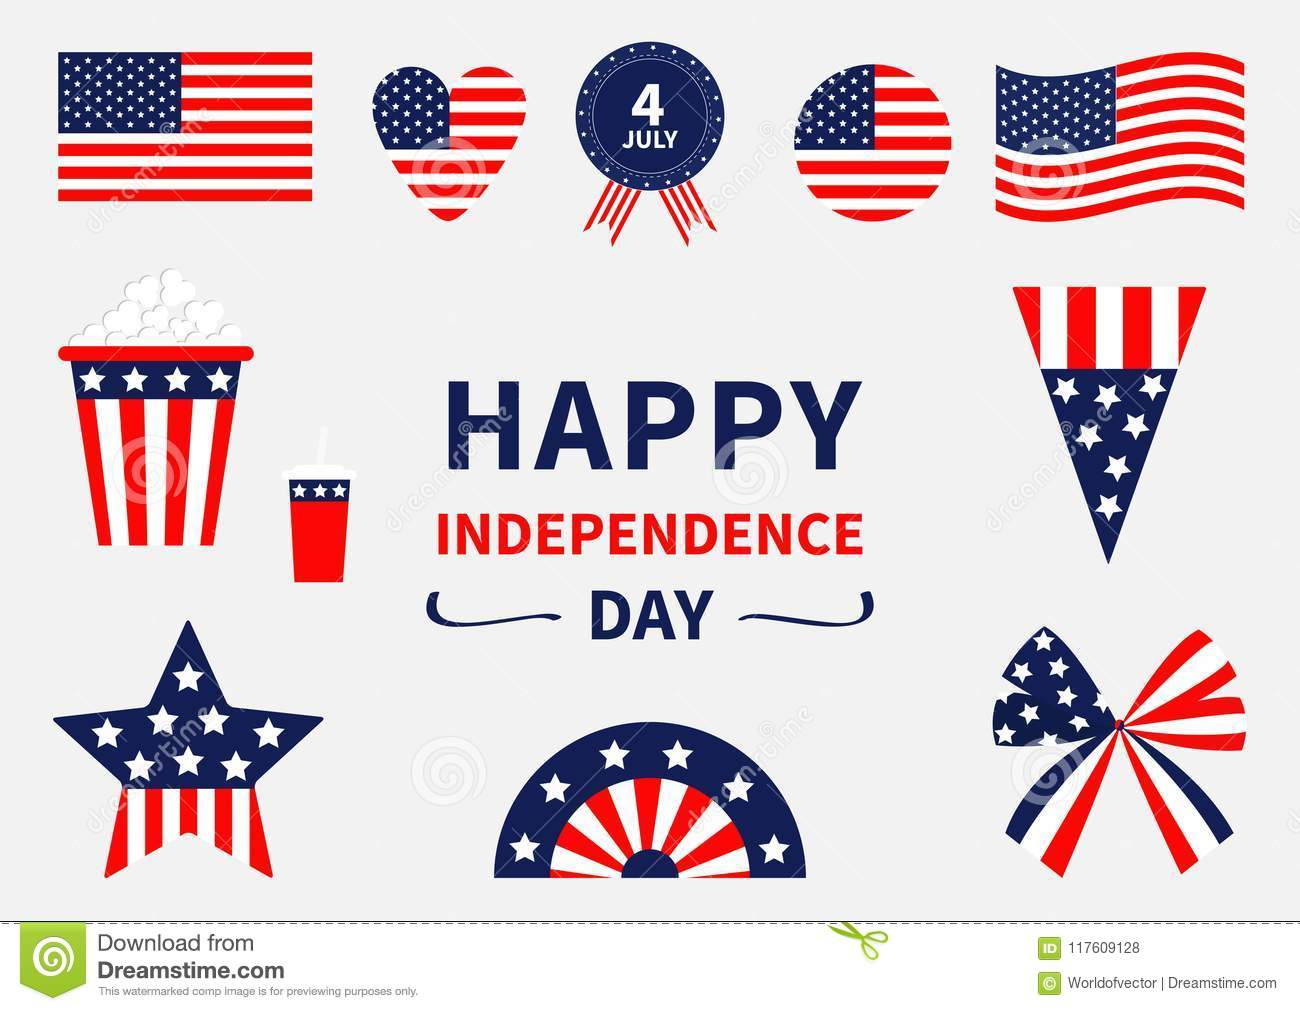 Happy independence day icon set. United states of America. 4th of July. Waving, crossed american flag, heart, round shape, badge w